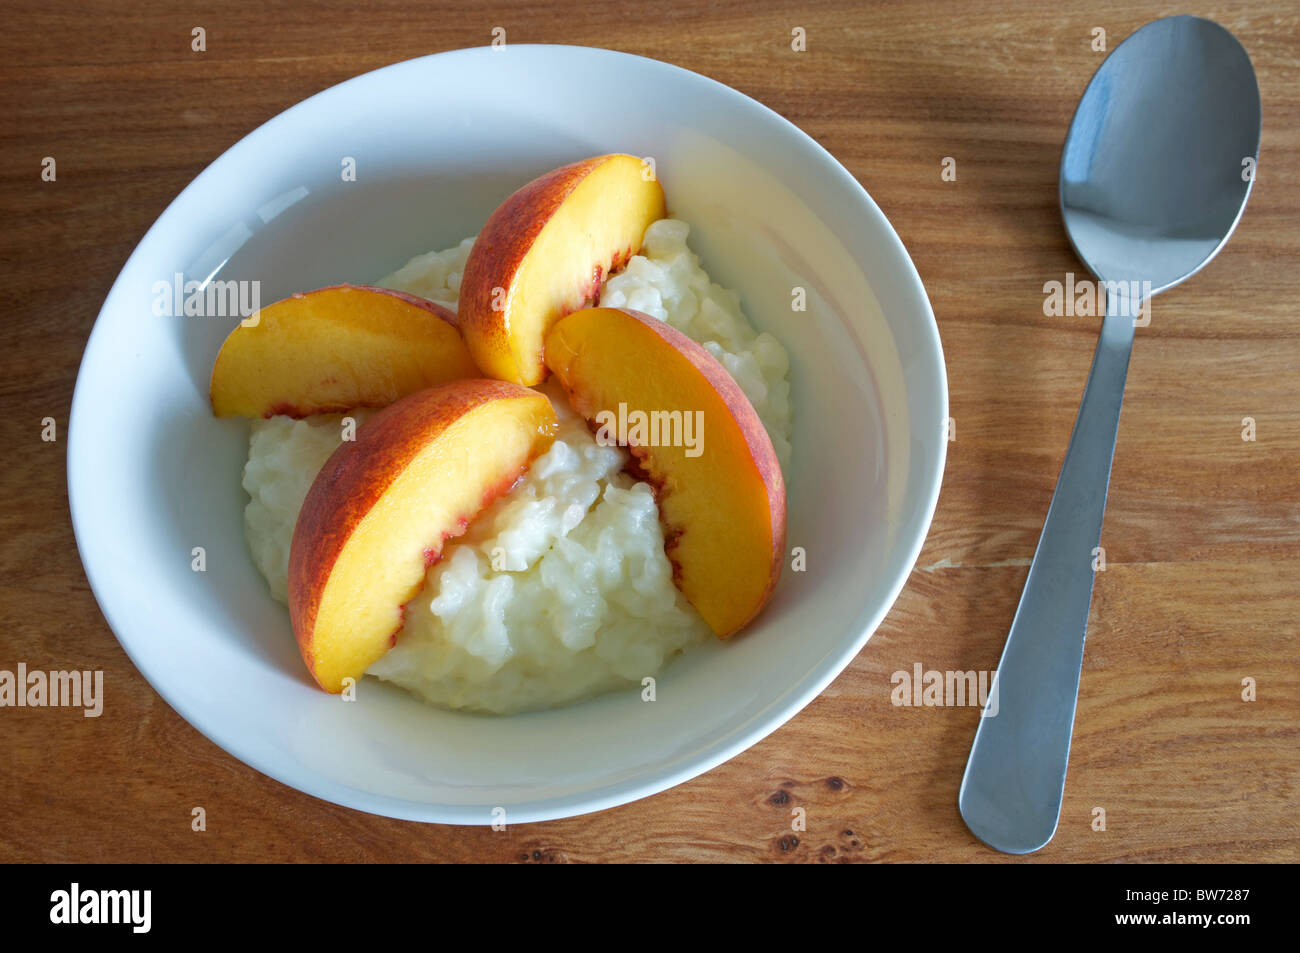 Creamed rice pudding with apricot slices - Stock Image